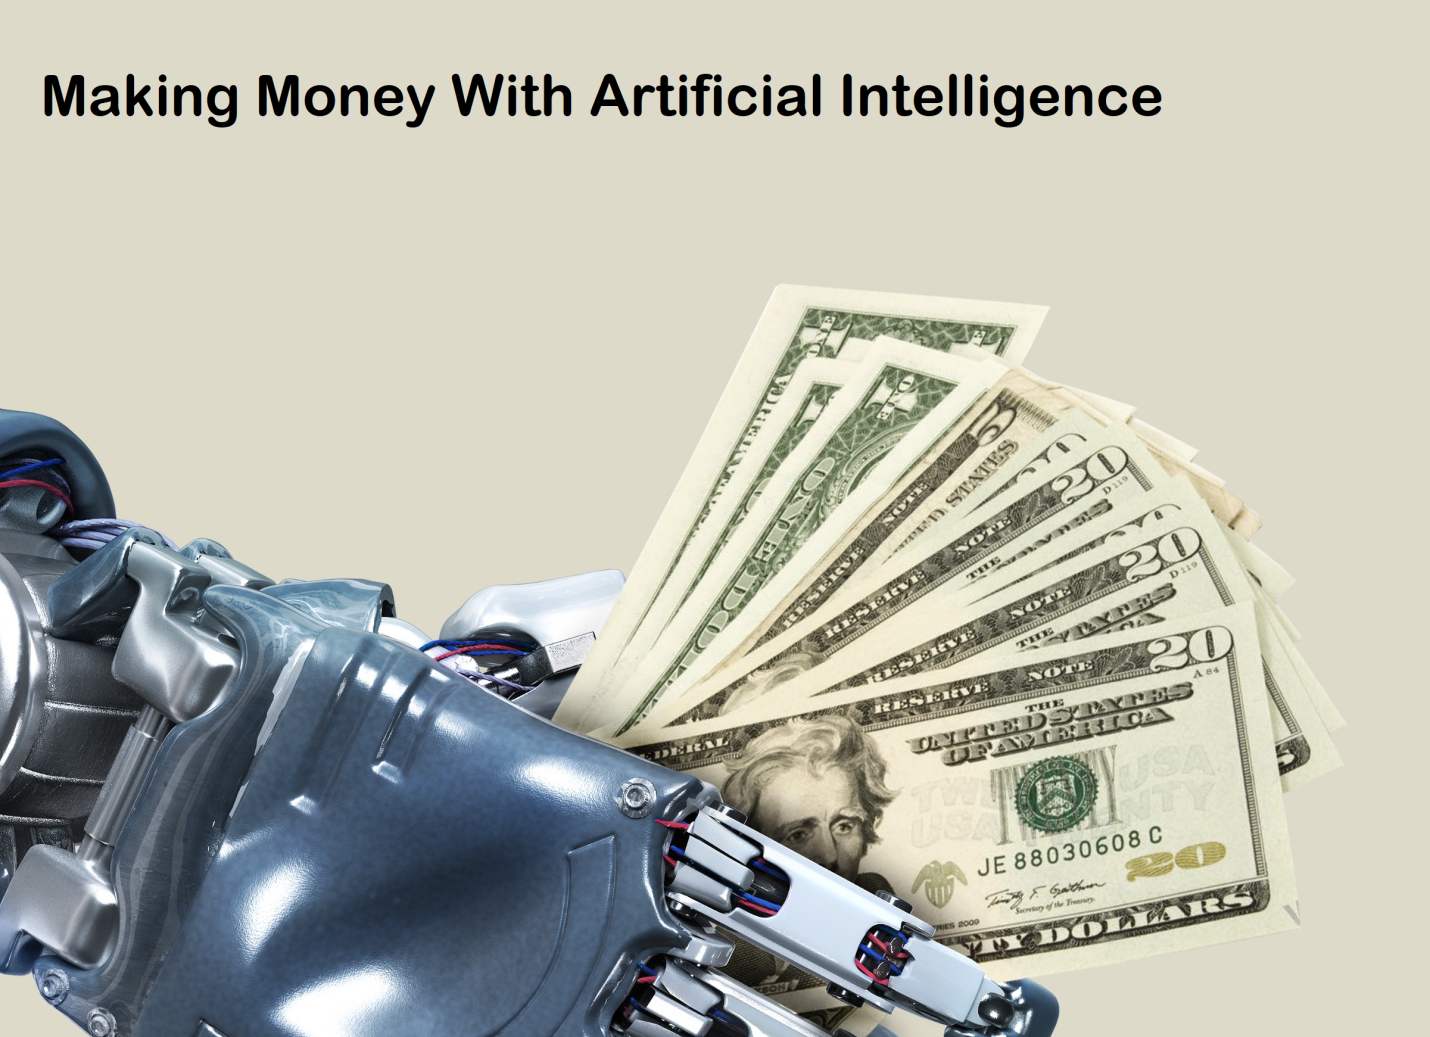 Money With Artificial Intelligence